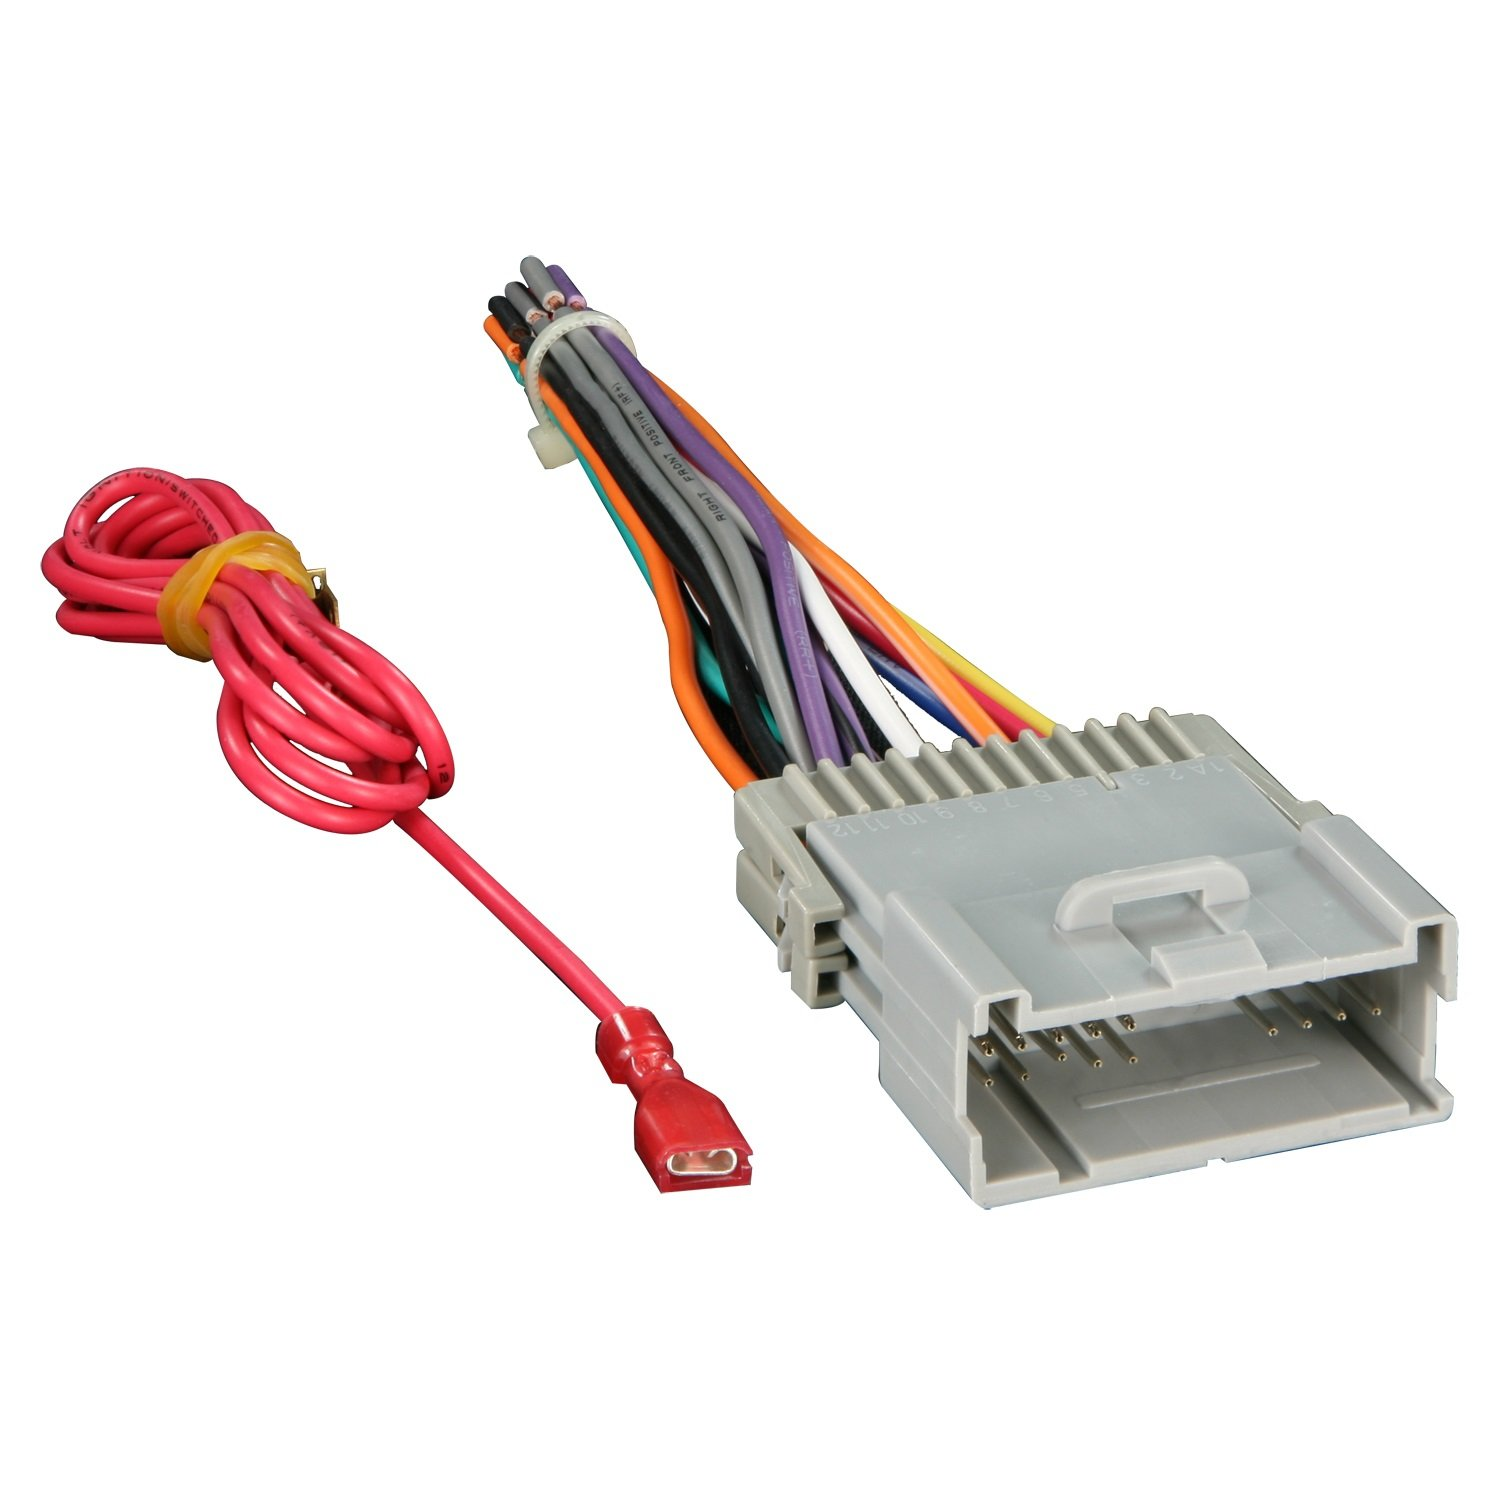 61eewxp9orL._SL1500_ amazon com metra 70 2003 radio wiring harness for gm 98 08 2008 chevy impala smp wire harness connector at bakdesigns.co